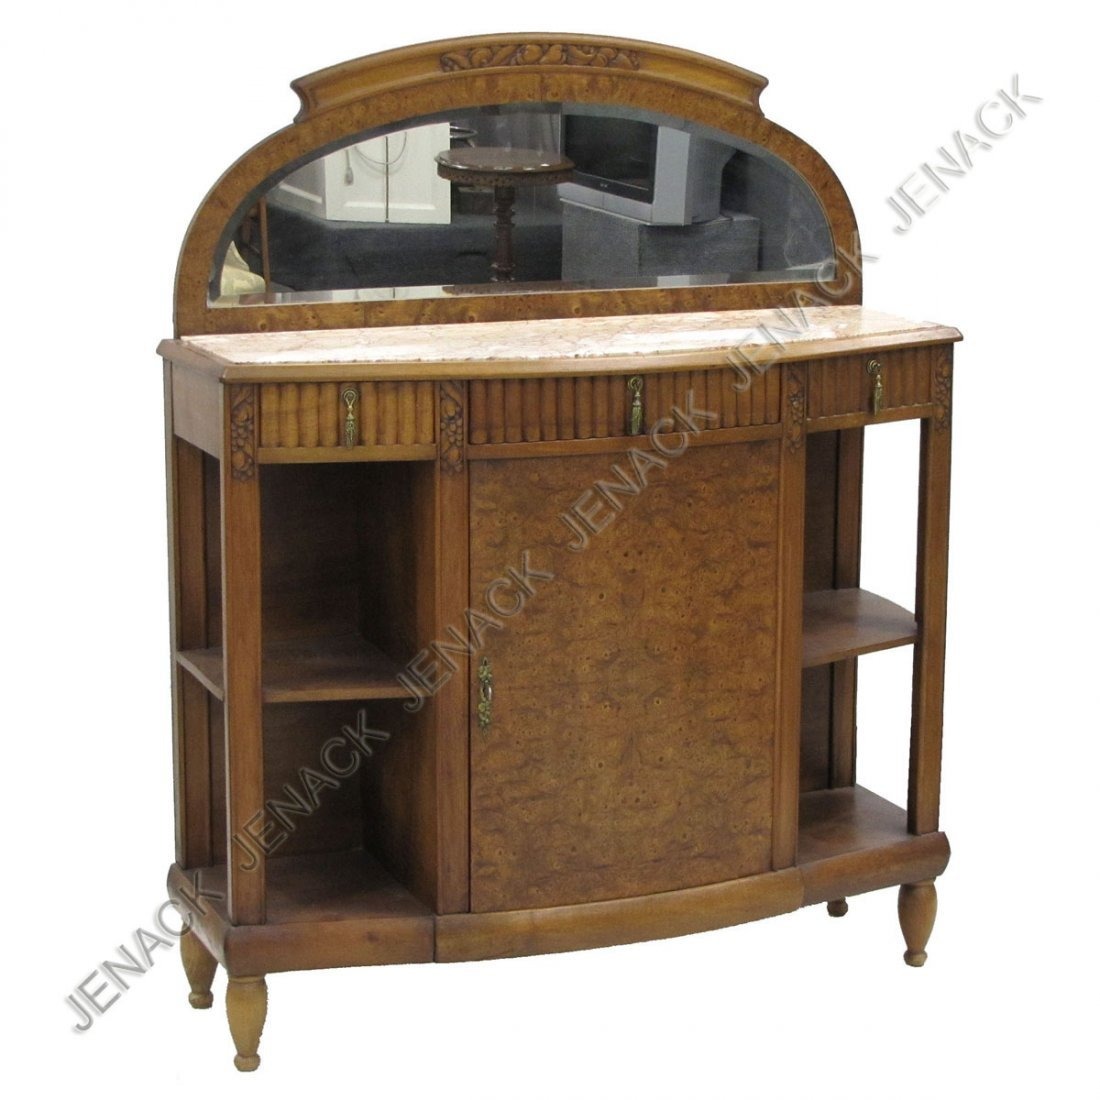 123: FRENCH ART DECO BURL WALNUT AND MARBLE BUFFET